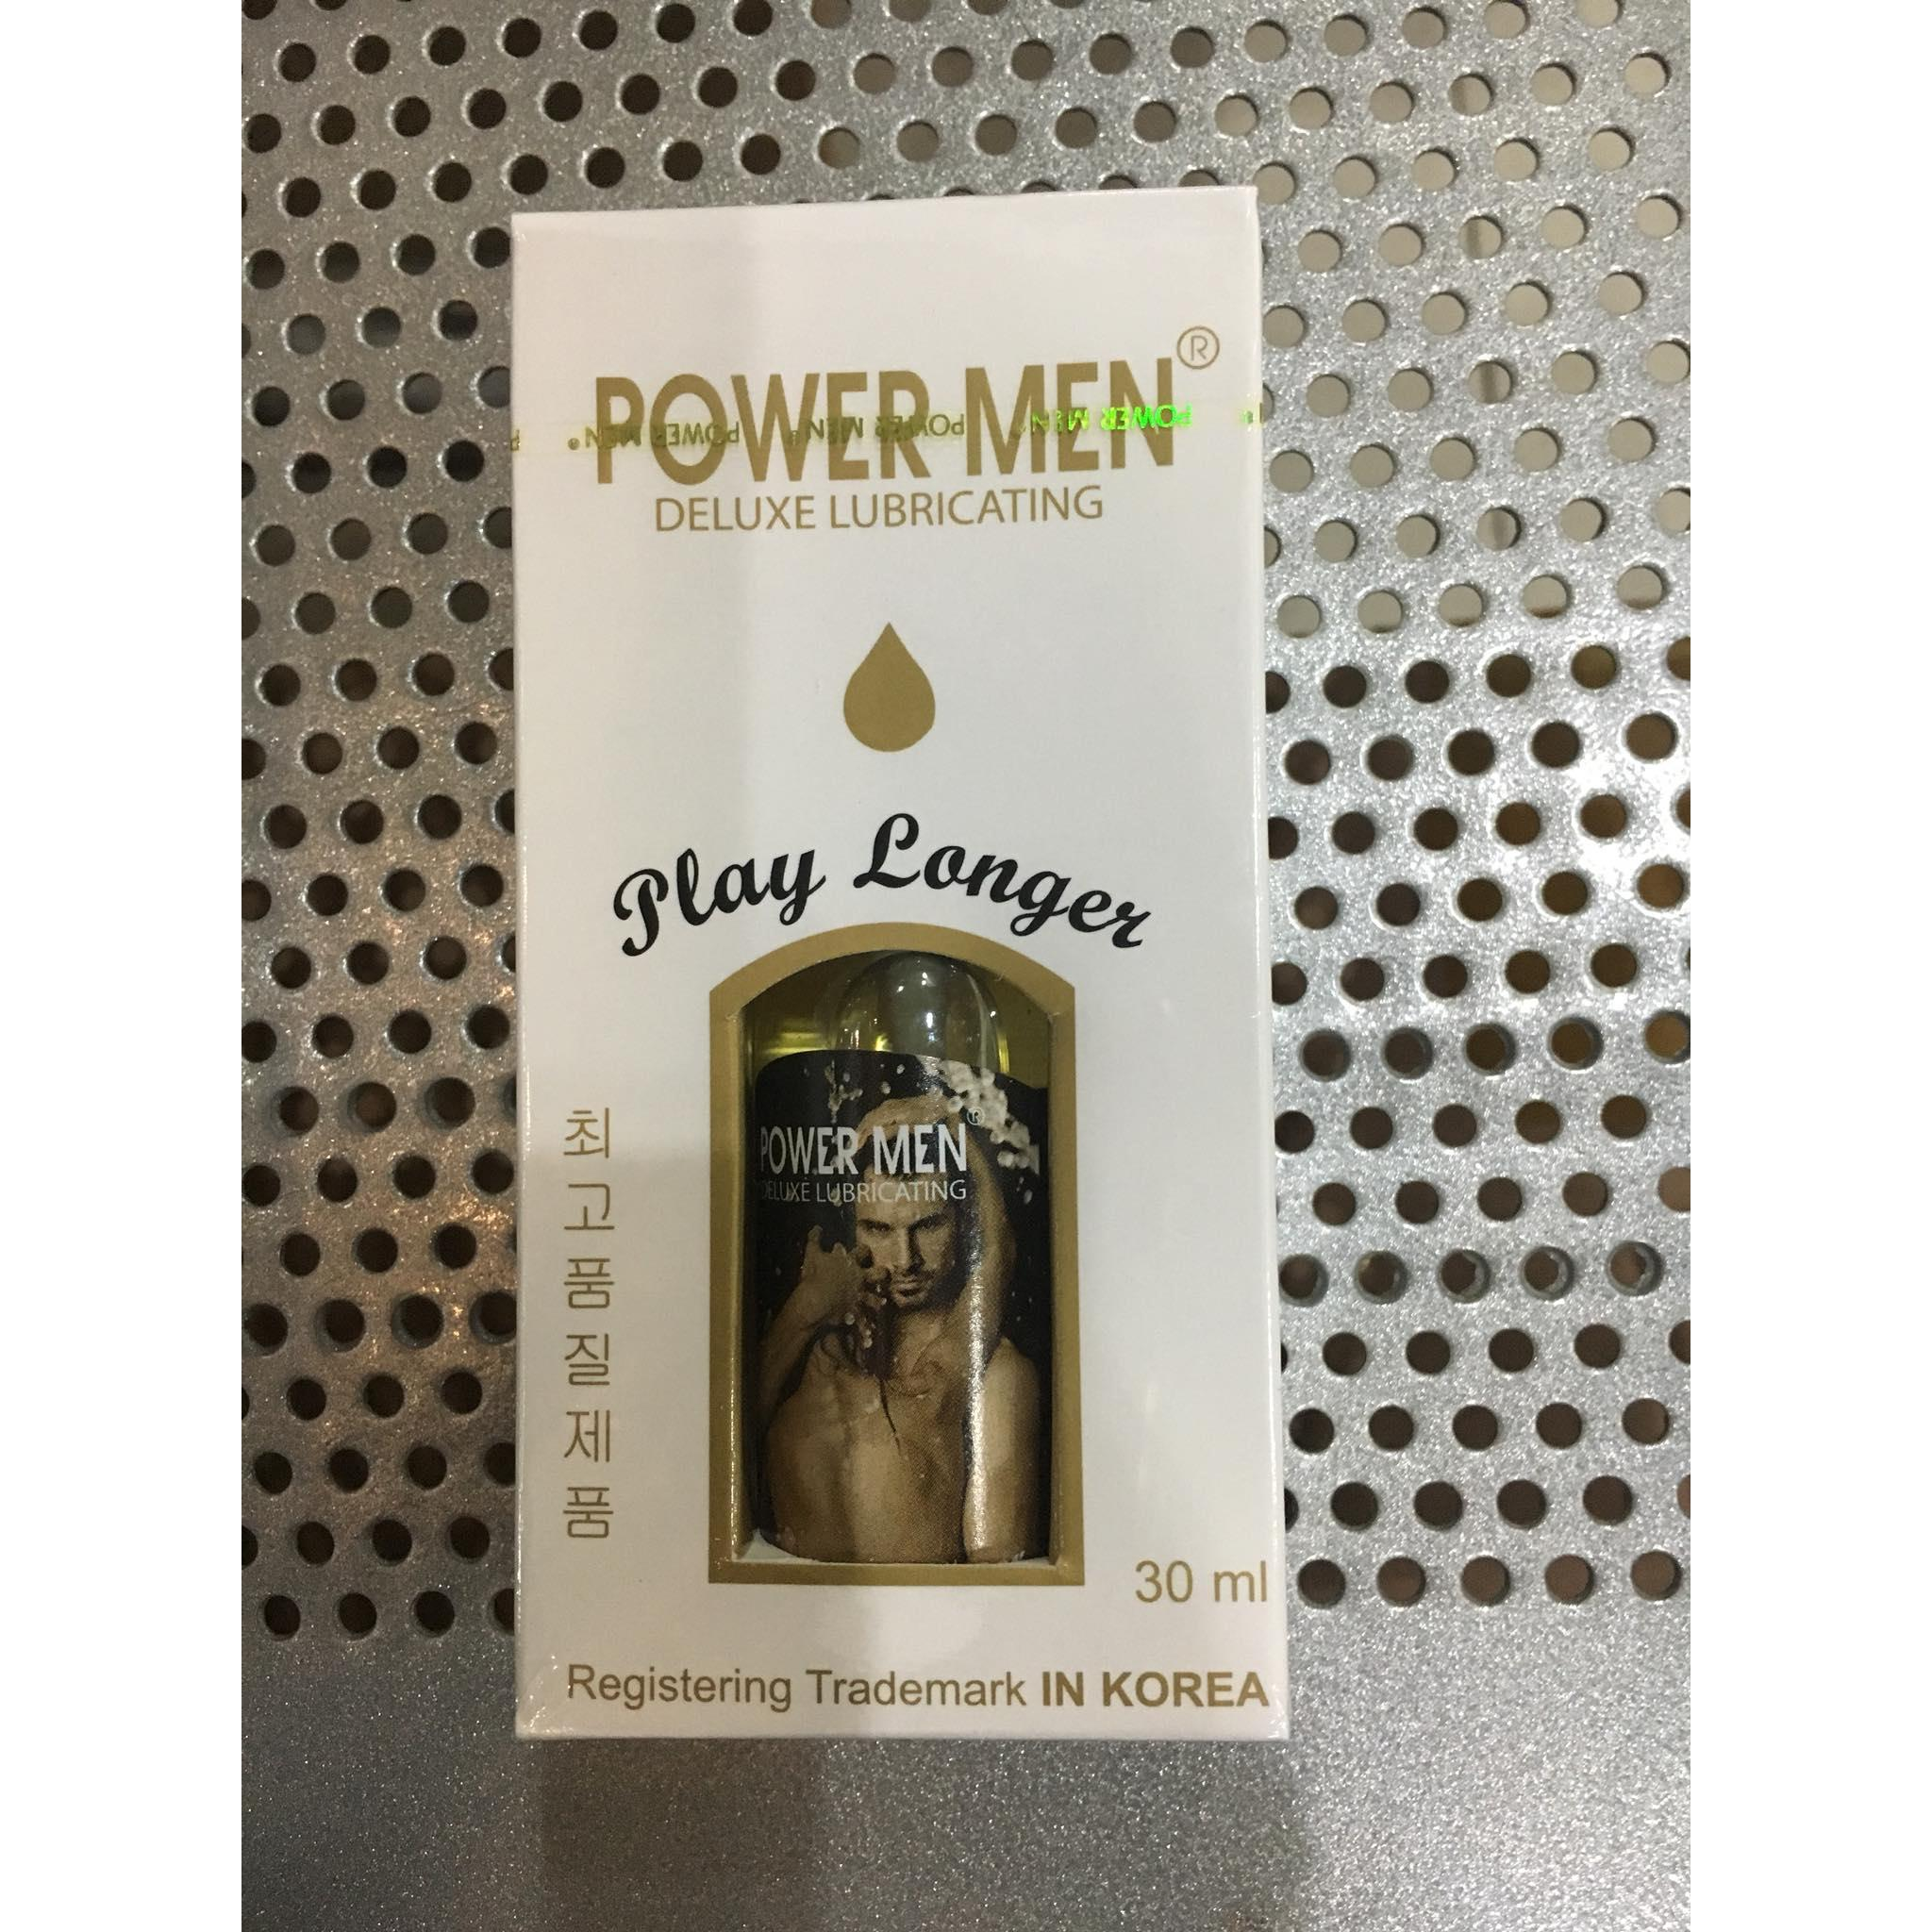 Power Men Play Longer 30ml